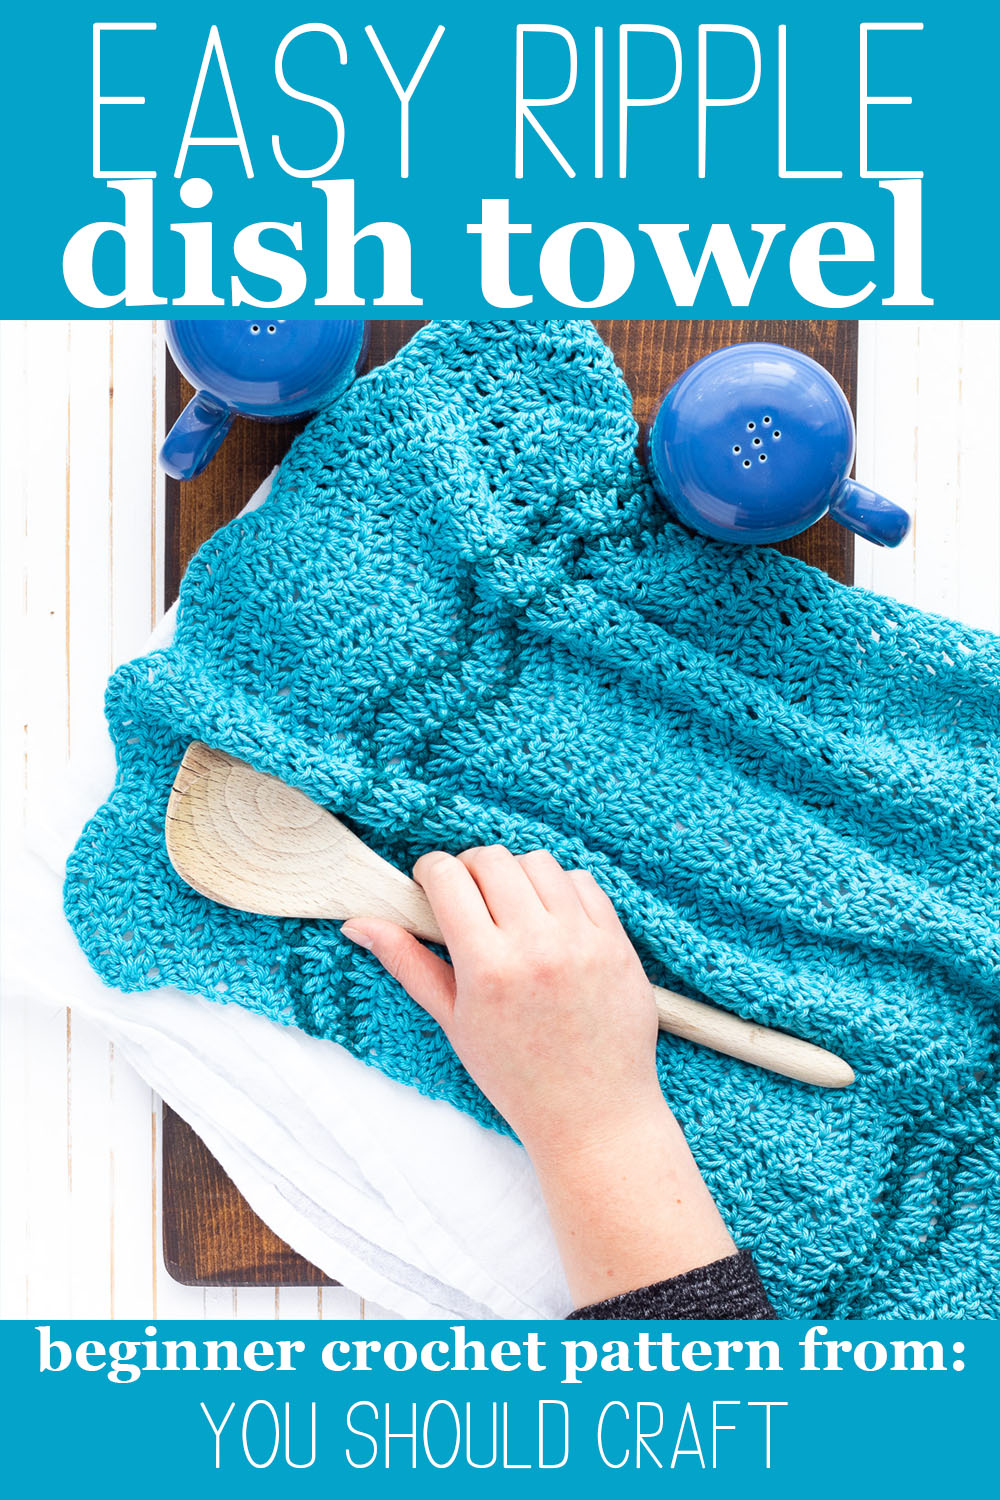 """hand holding a wooden spoon on towels, with salt and pepper shakers and text reading """"easy ripple dish towel - beginner crochet pattern from you should craft"""""""